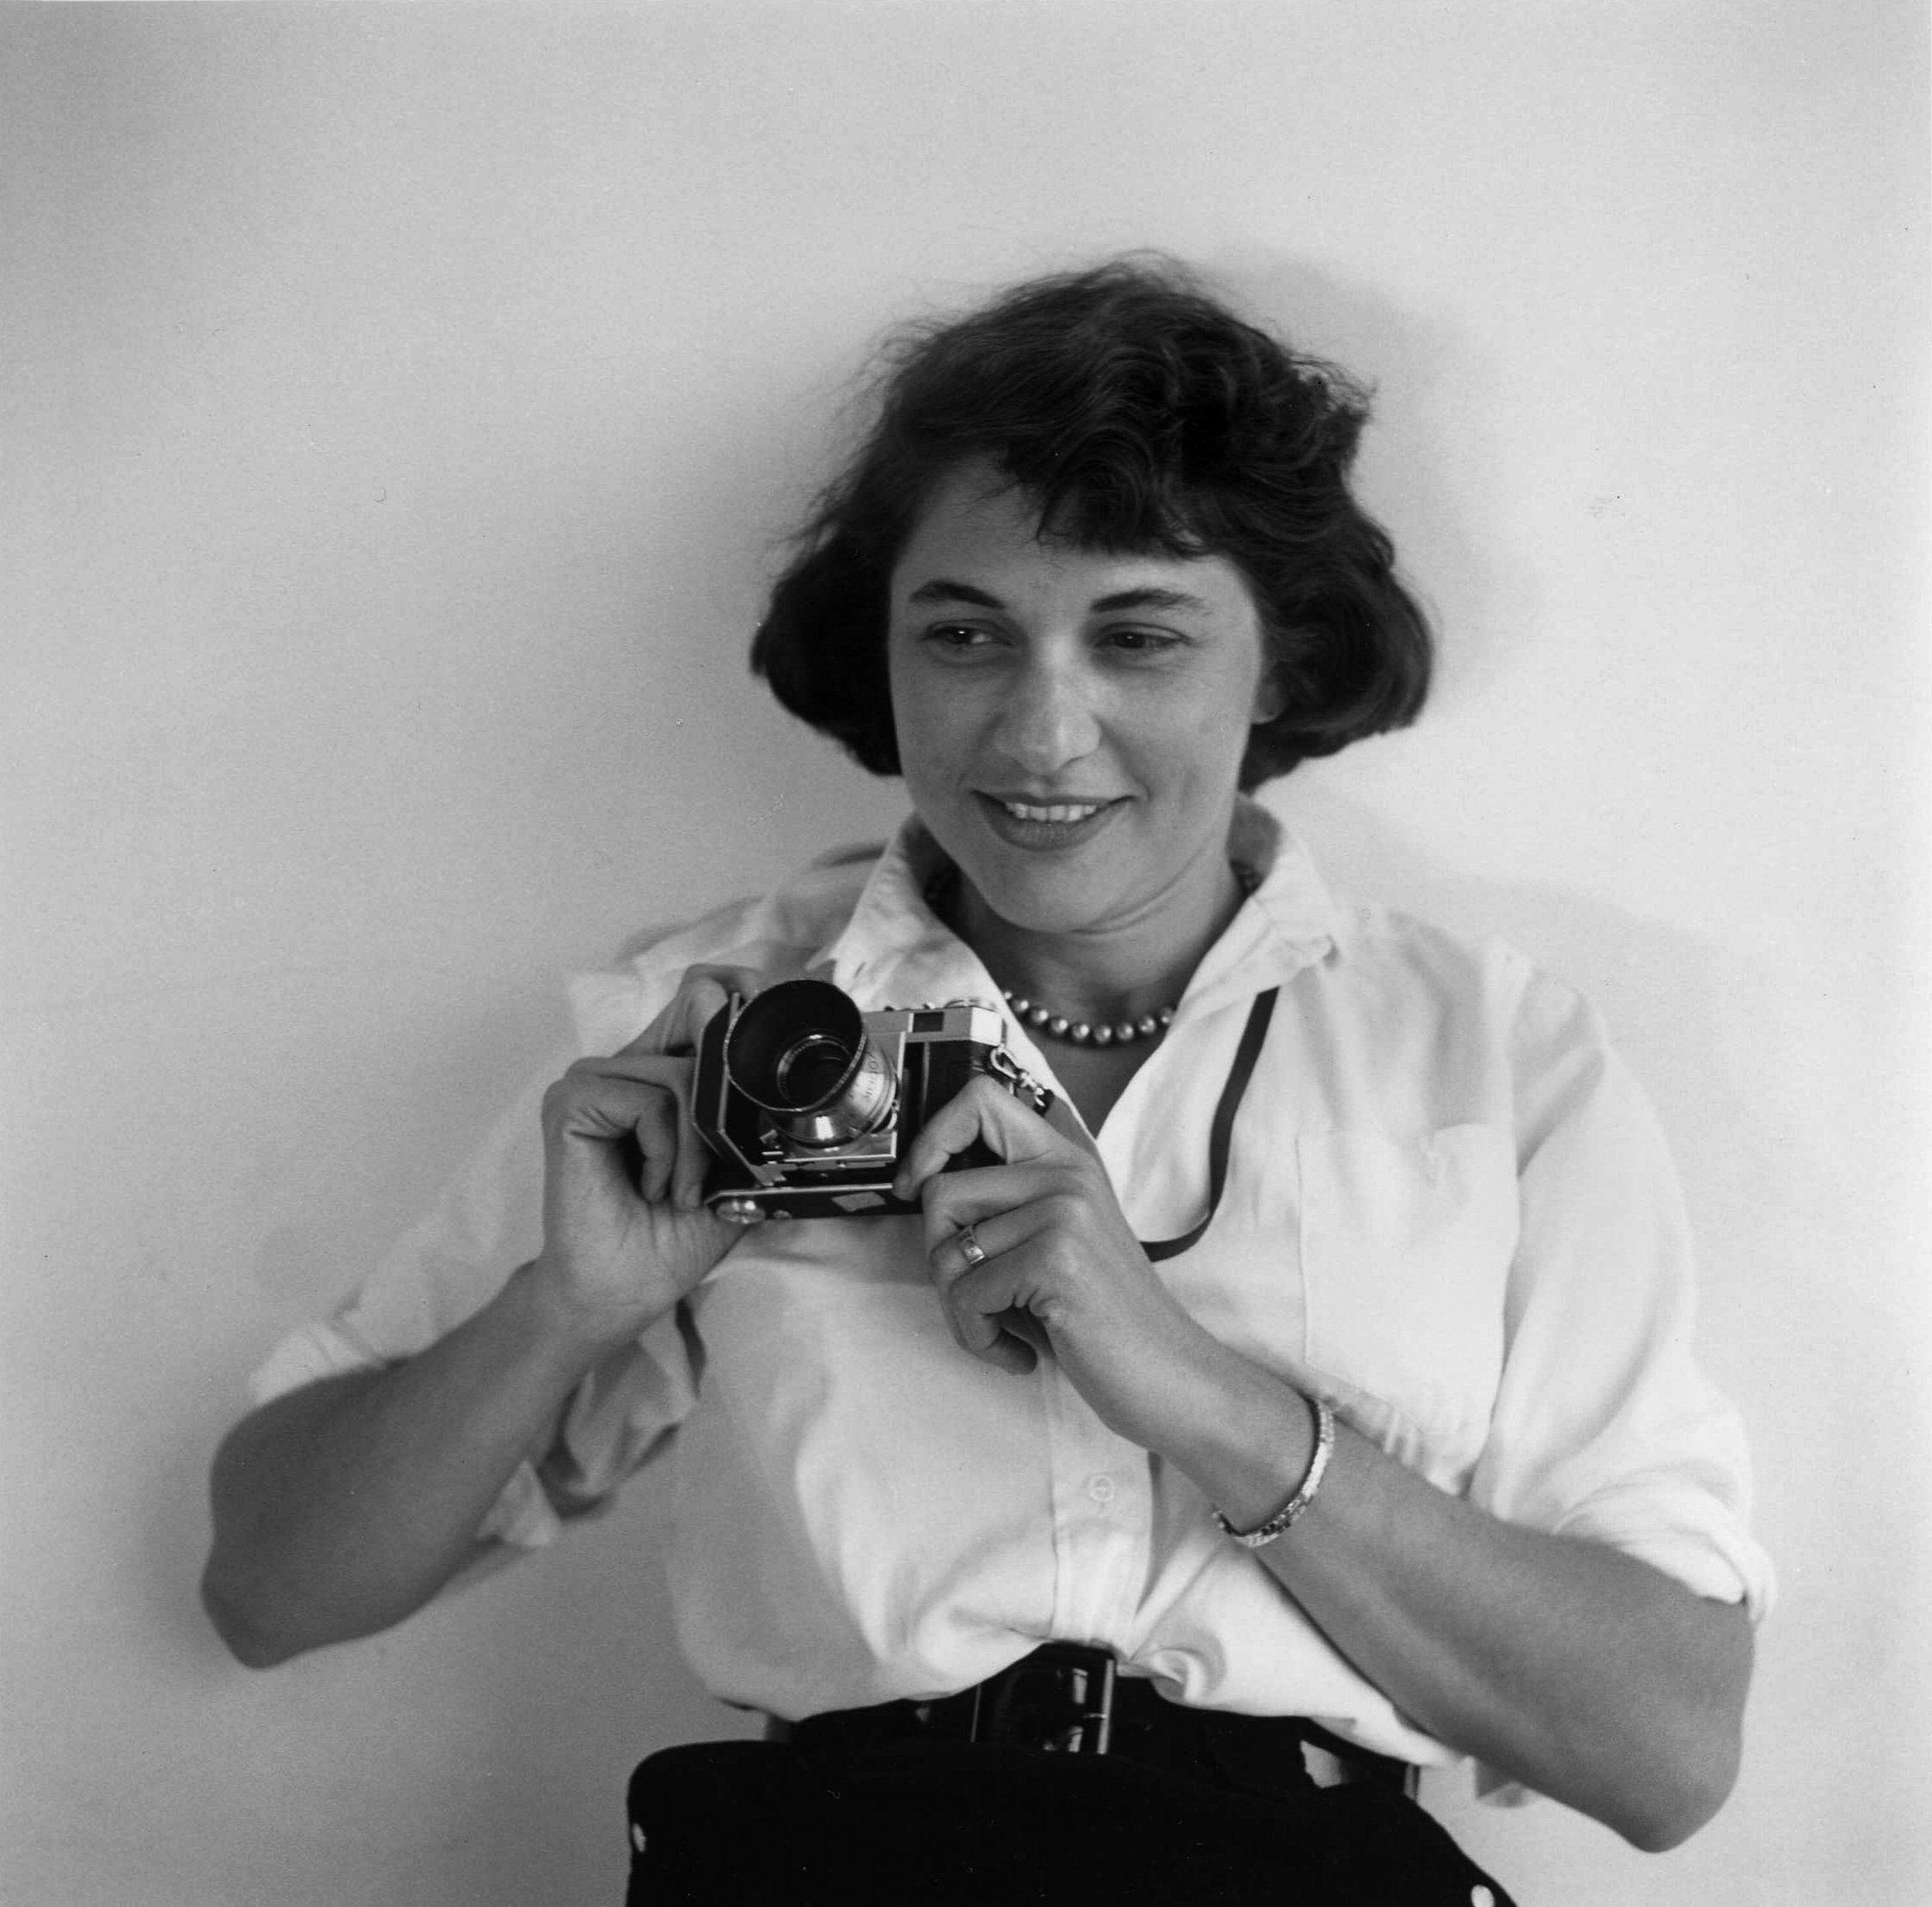 """Ruth Orkin was a photojournalist and filmmaker. She is best known for her images of celebrities, her work with LIFE magazine covering the Israeli Philharmonic, and her project """"Don't Be Afraid to Travel Alone"""" about women traveling alone in Europe after WWII.  © Orkin/Engel Film and Photo Archive"""